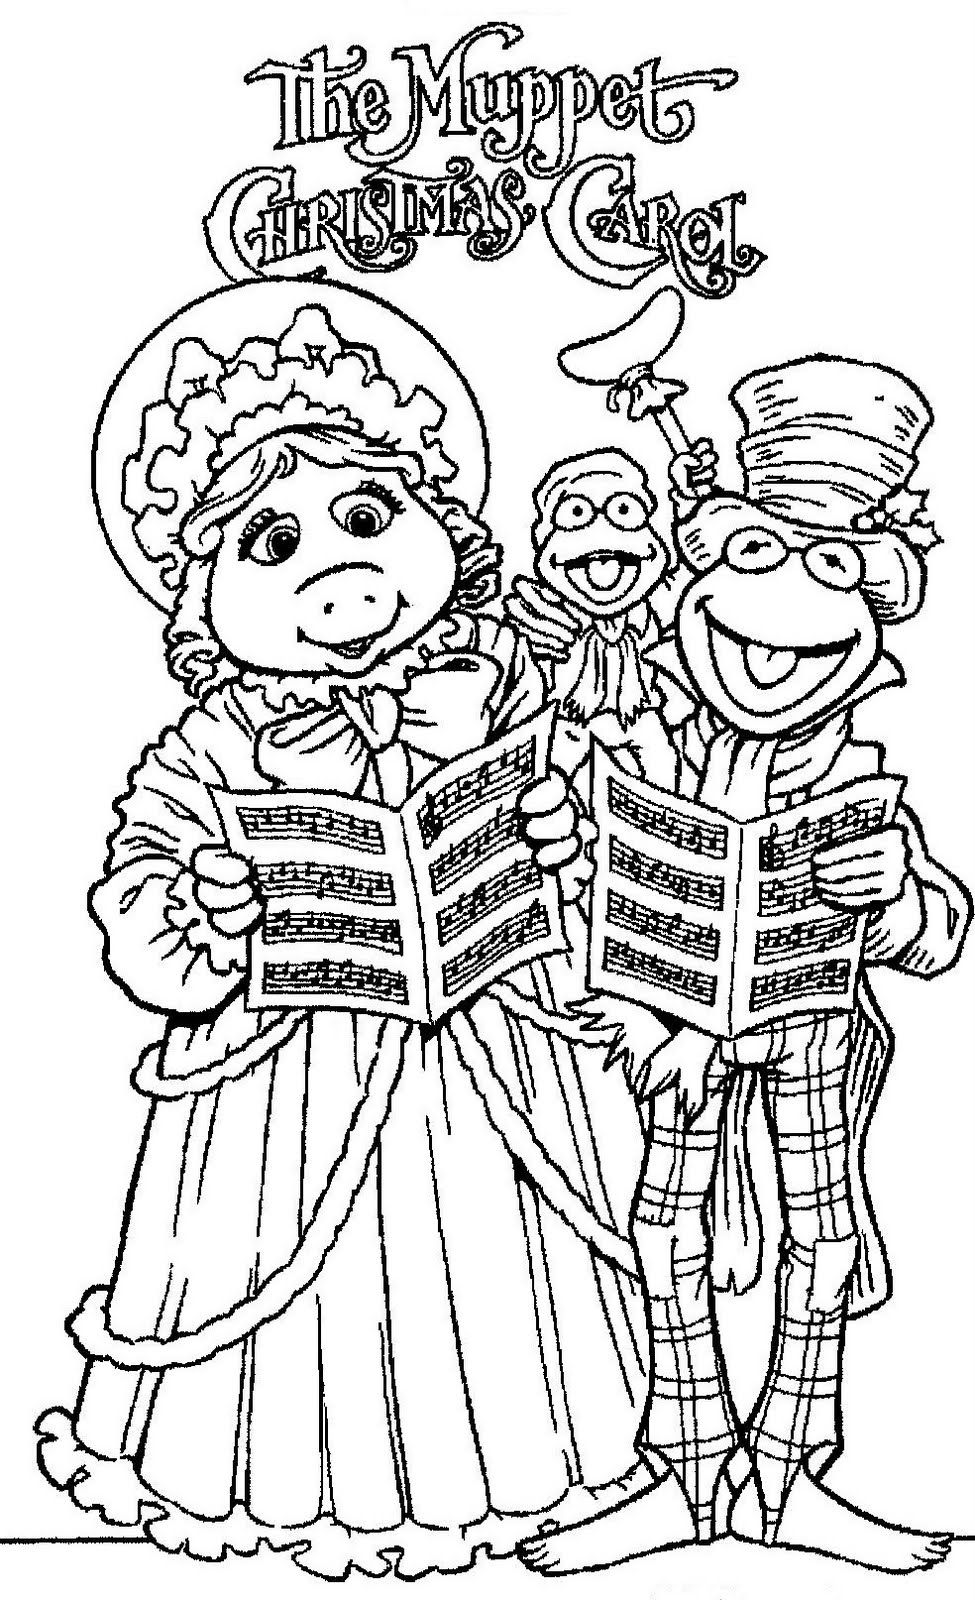 Christmas Carol Coloring Pages Printable Baby Coloring Pages Christmas Coloring Pages Christmas Coloring Books